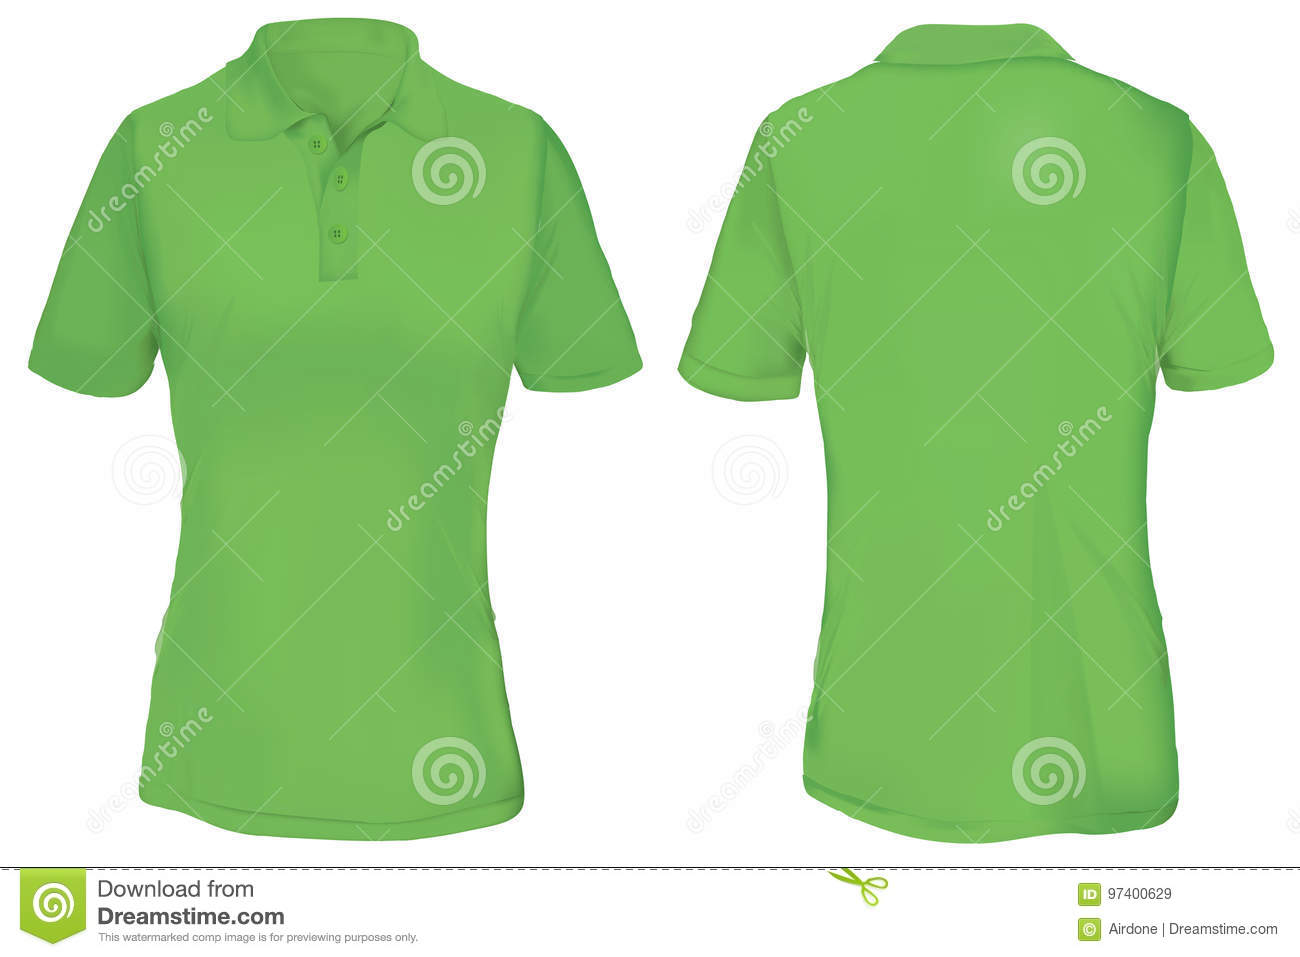 c3253bc0d Green Polo Shirt Template For Woman Stock Vector - Illustration of ...